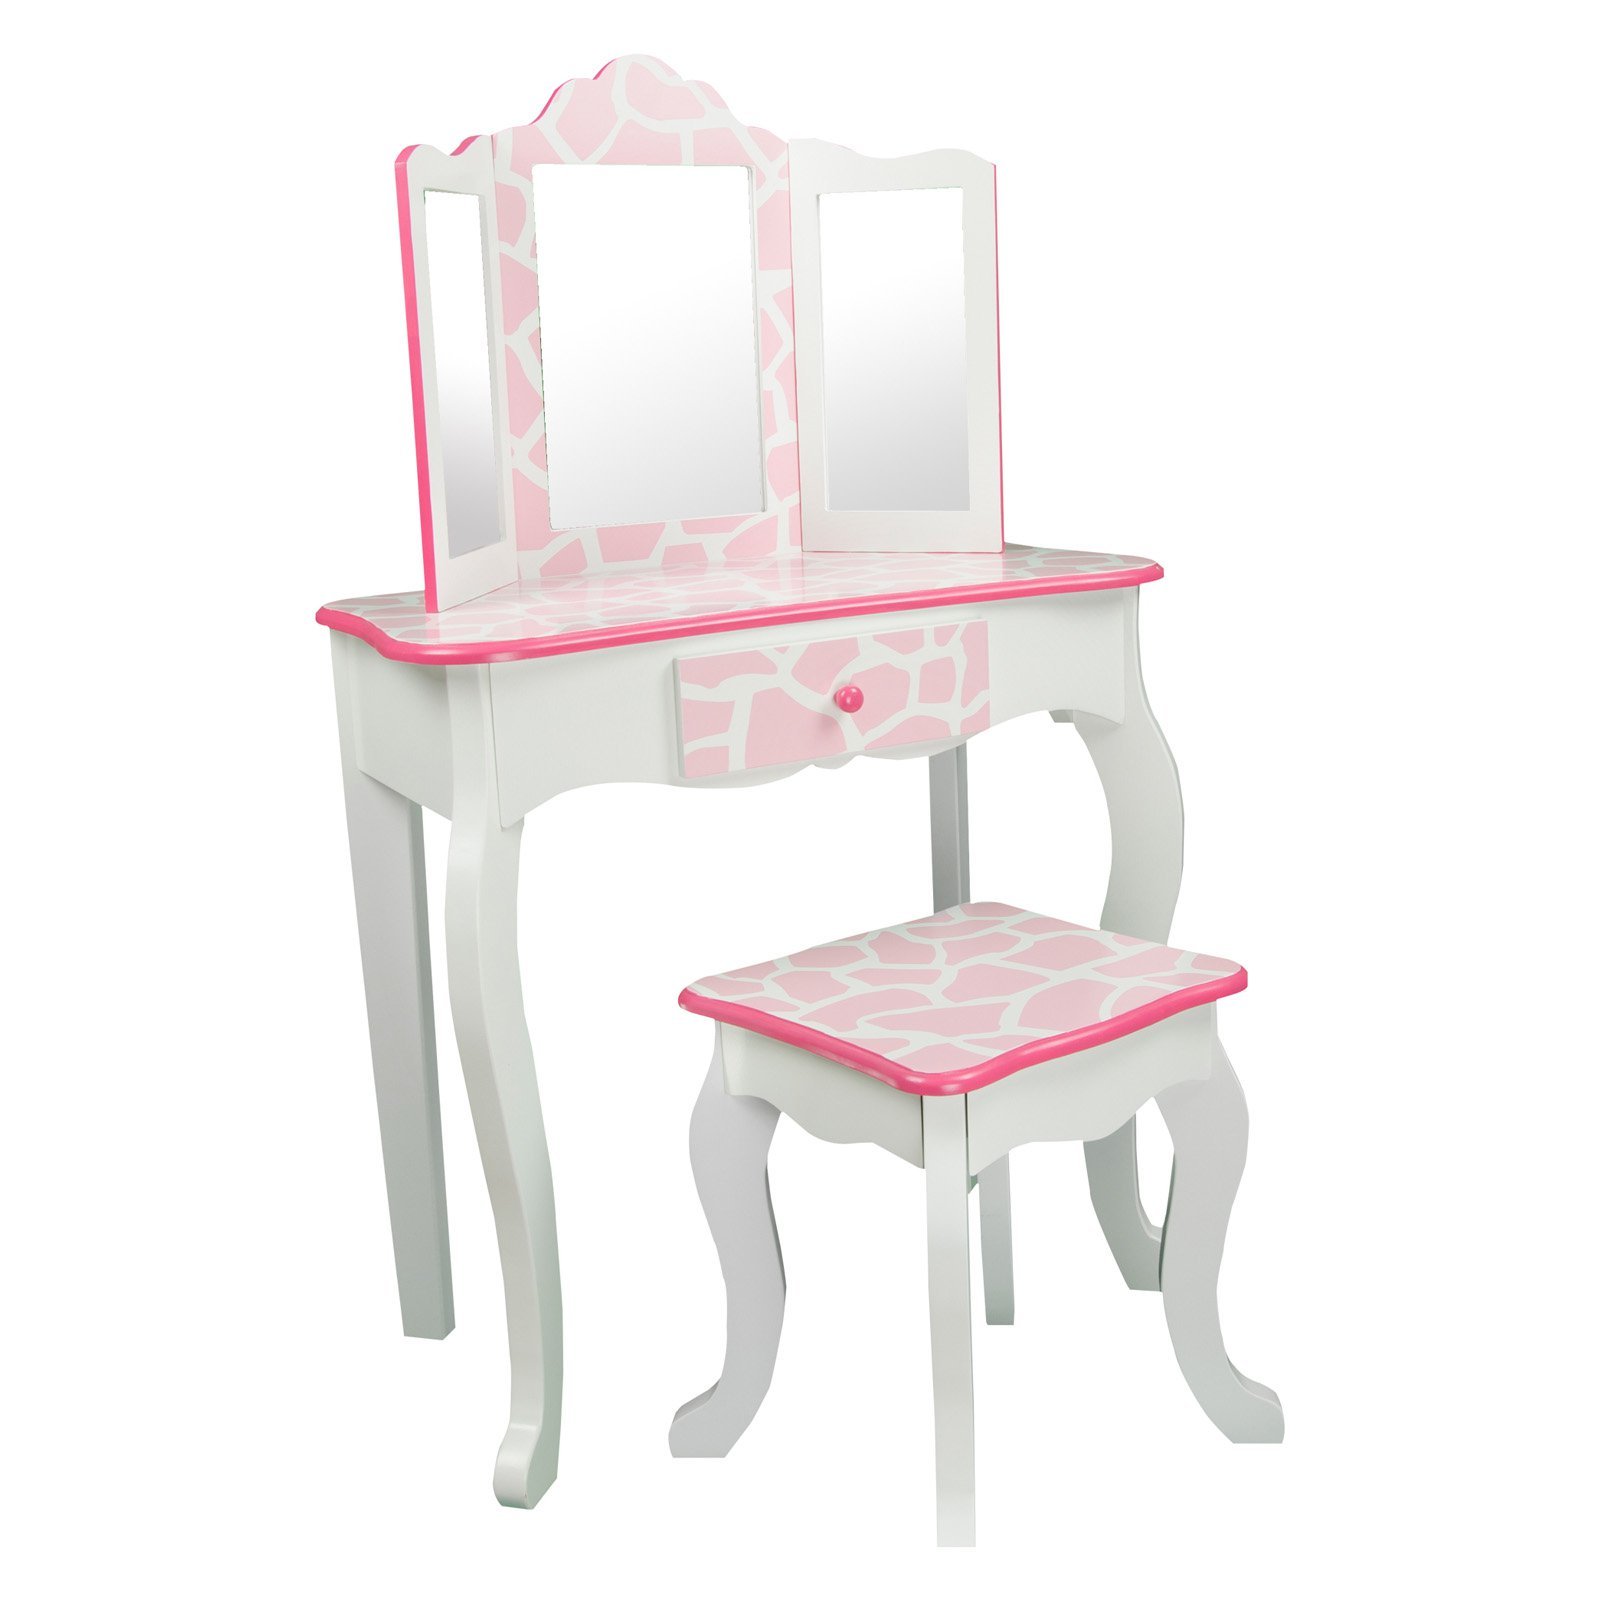 Teamson Kids Fashion Giraffe Prints Gisele Vanity Table Stool Set Pink White Com